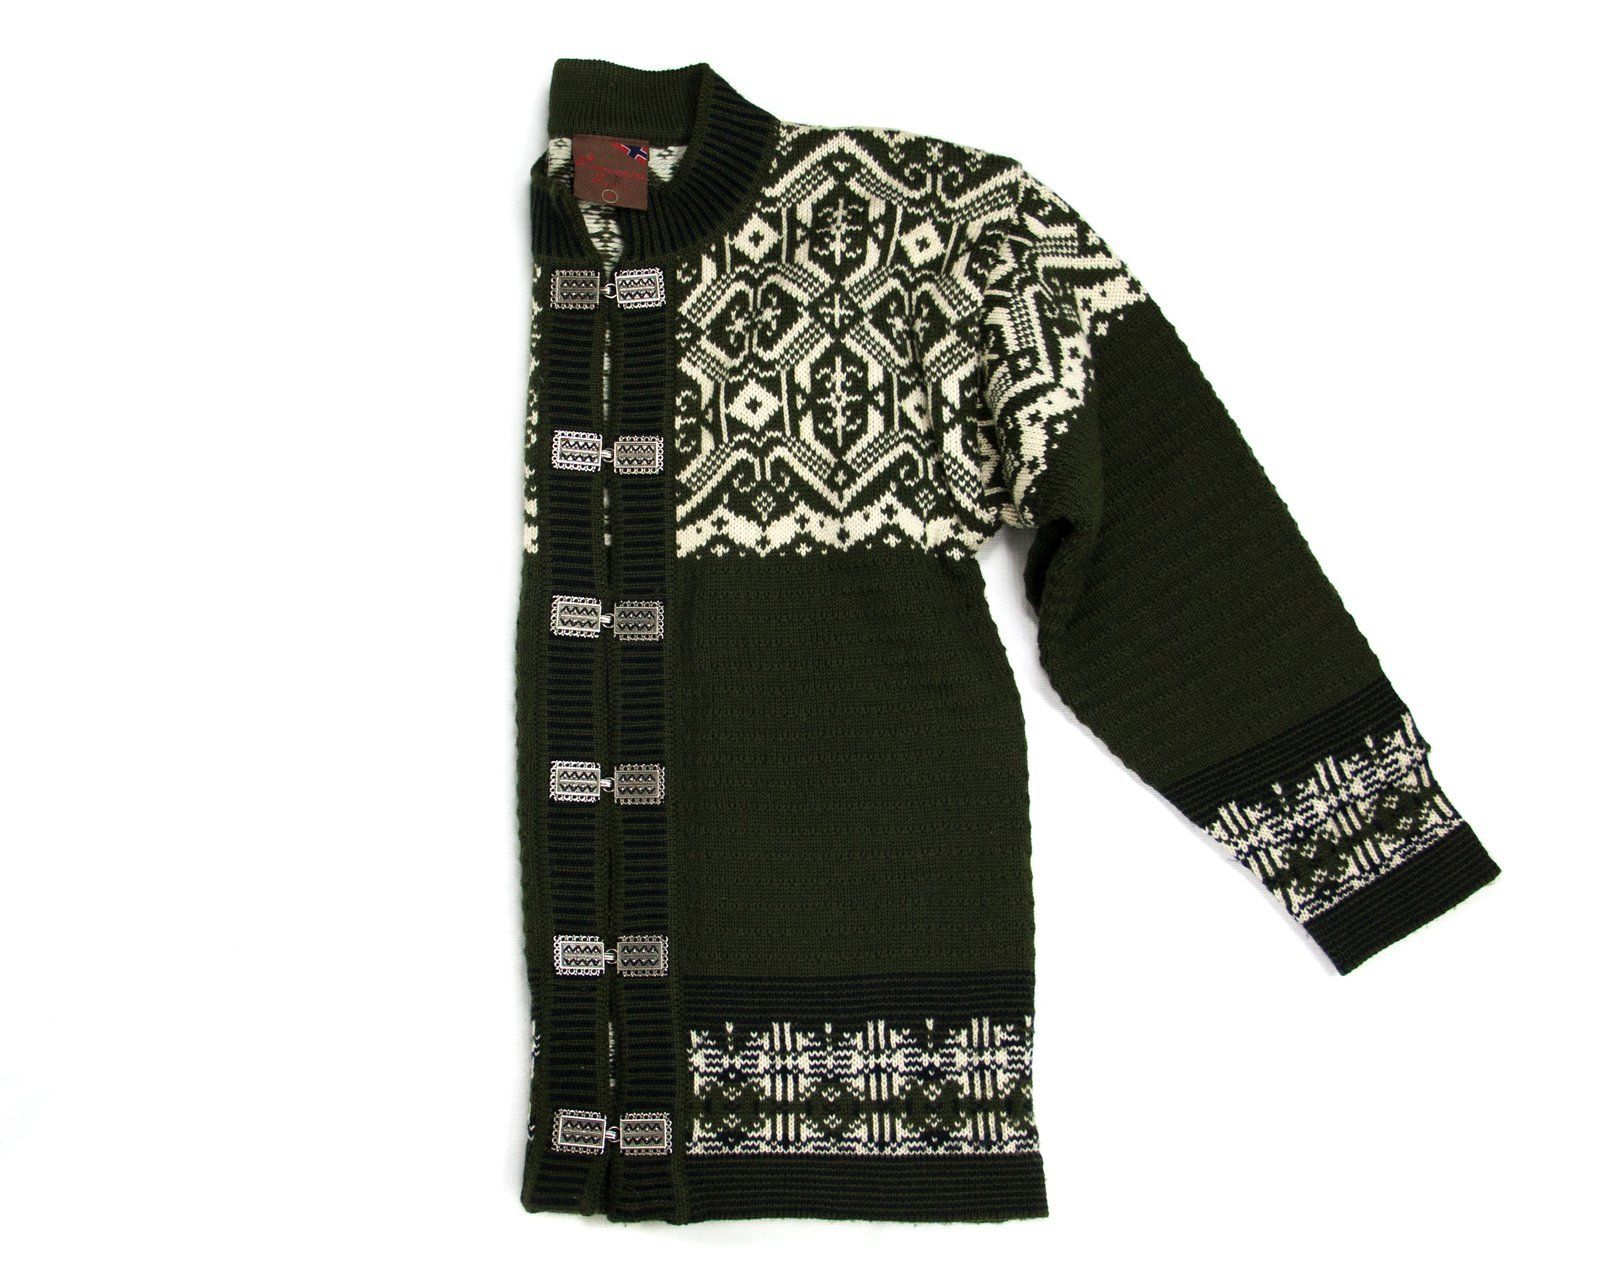 CHRISTIANIA NORDIC FAIR ISLE WOOL CARDIGAN SWEATER, M - secondfirst